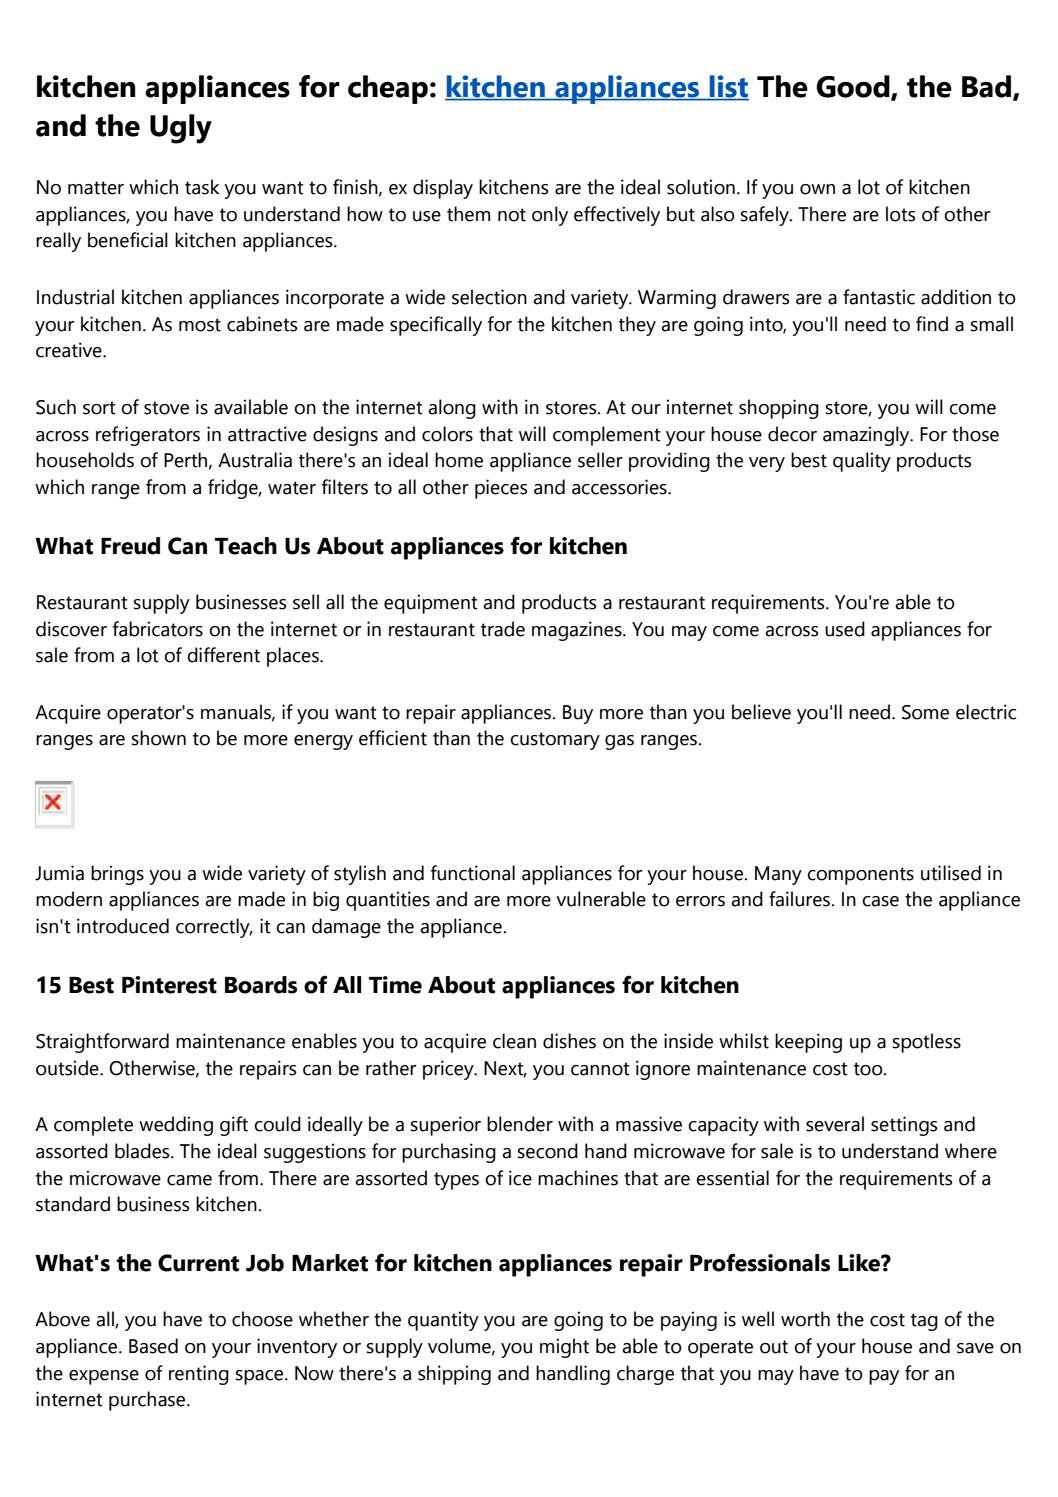 10 Compelling Reasons Why You Need Kitchen Appliances Home Depot By Q0liwsv121 Issuu